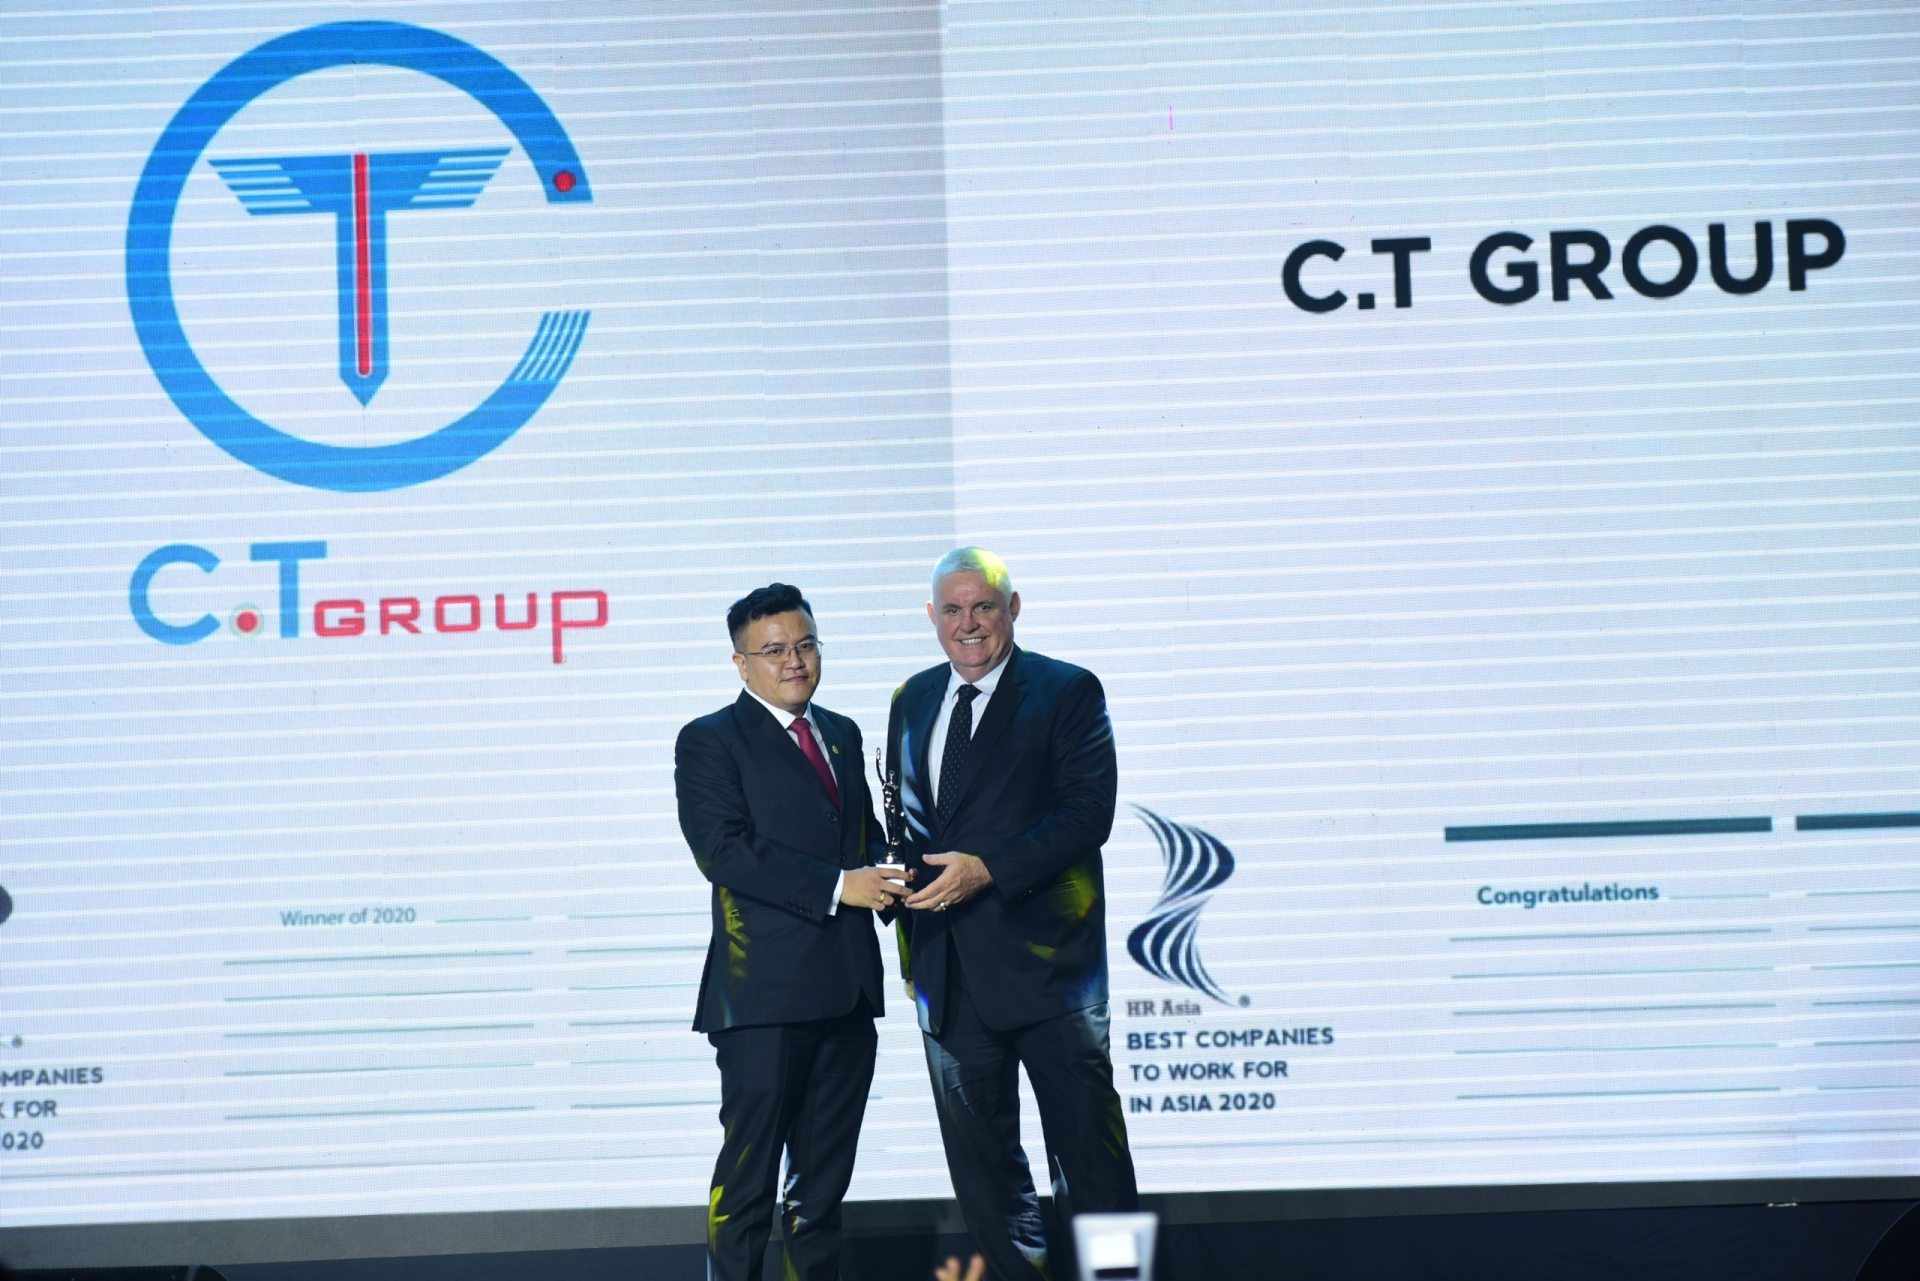 C.T Group receives Best Company to Work for in Asia award